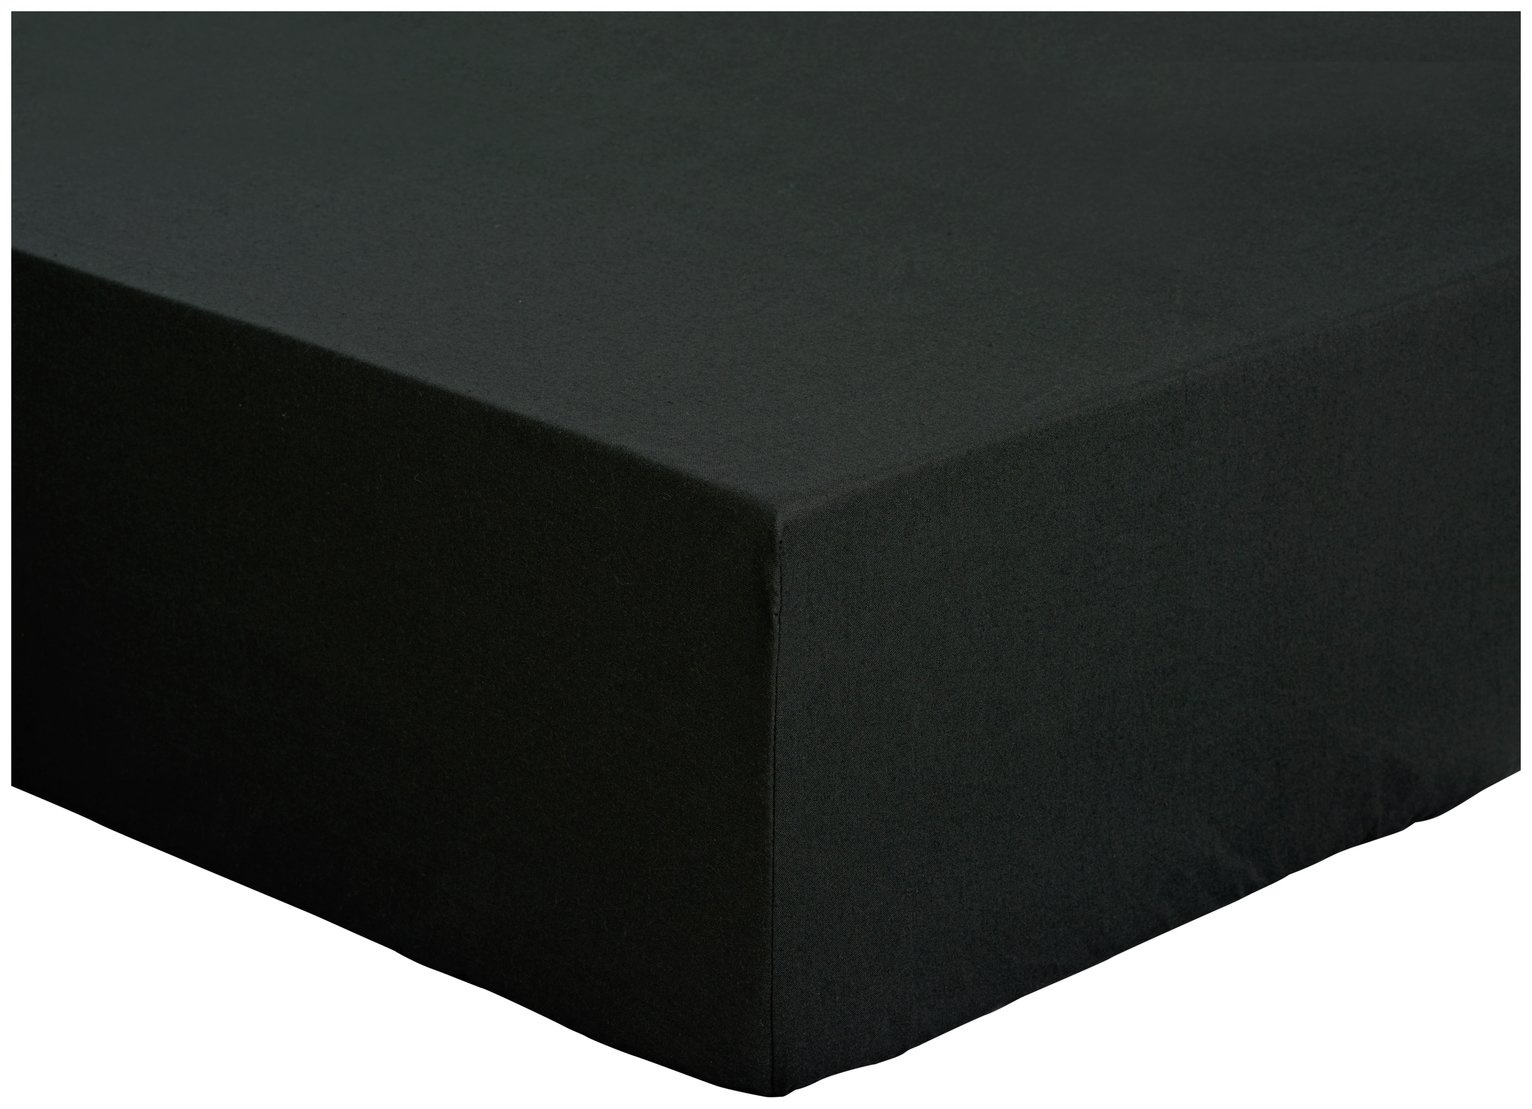 colourmatch jet black fitted sheet  kingsize